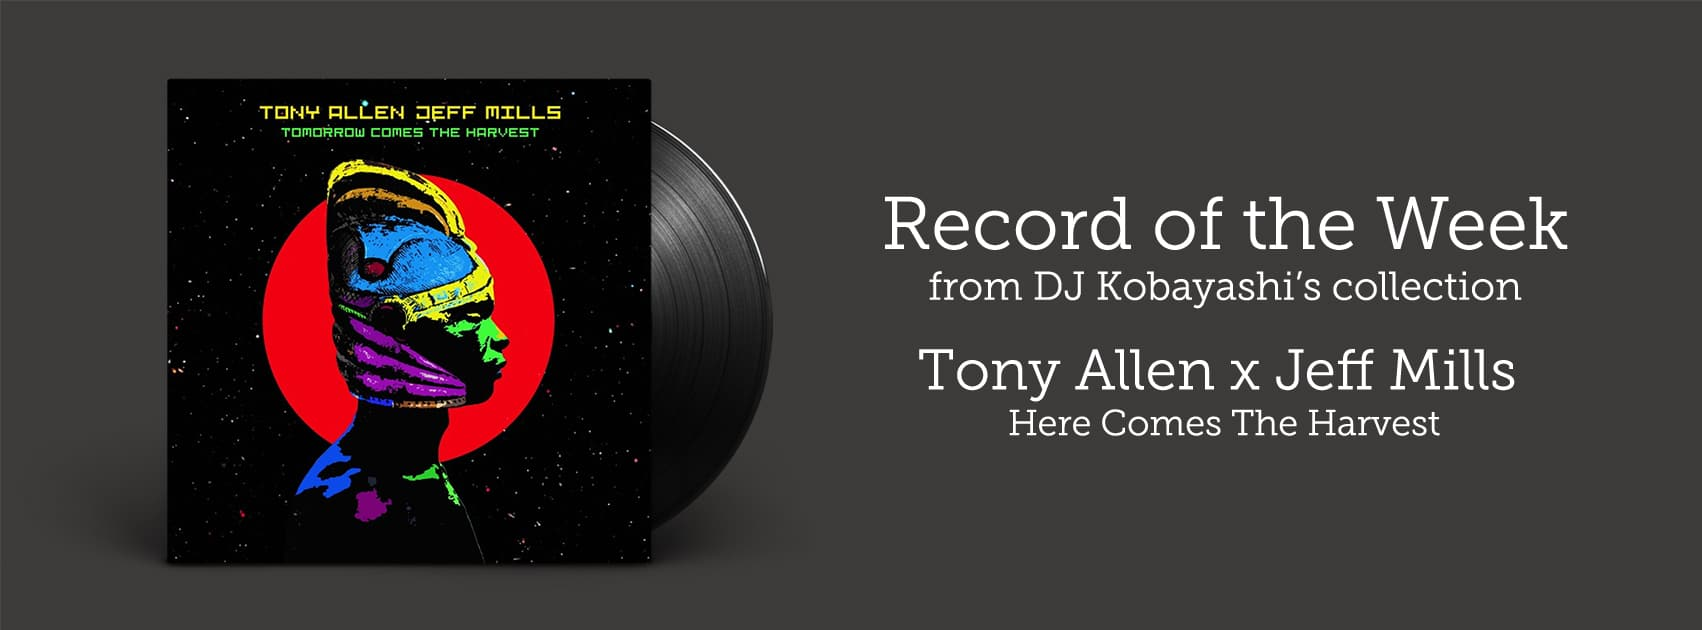 Record of the Week - Tony Allen and Jeff Mills